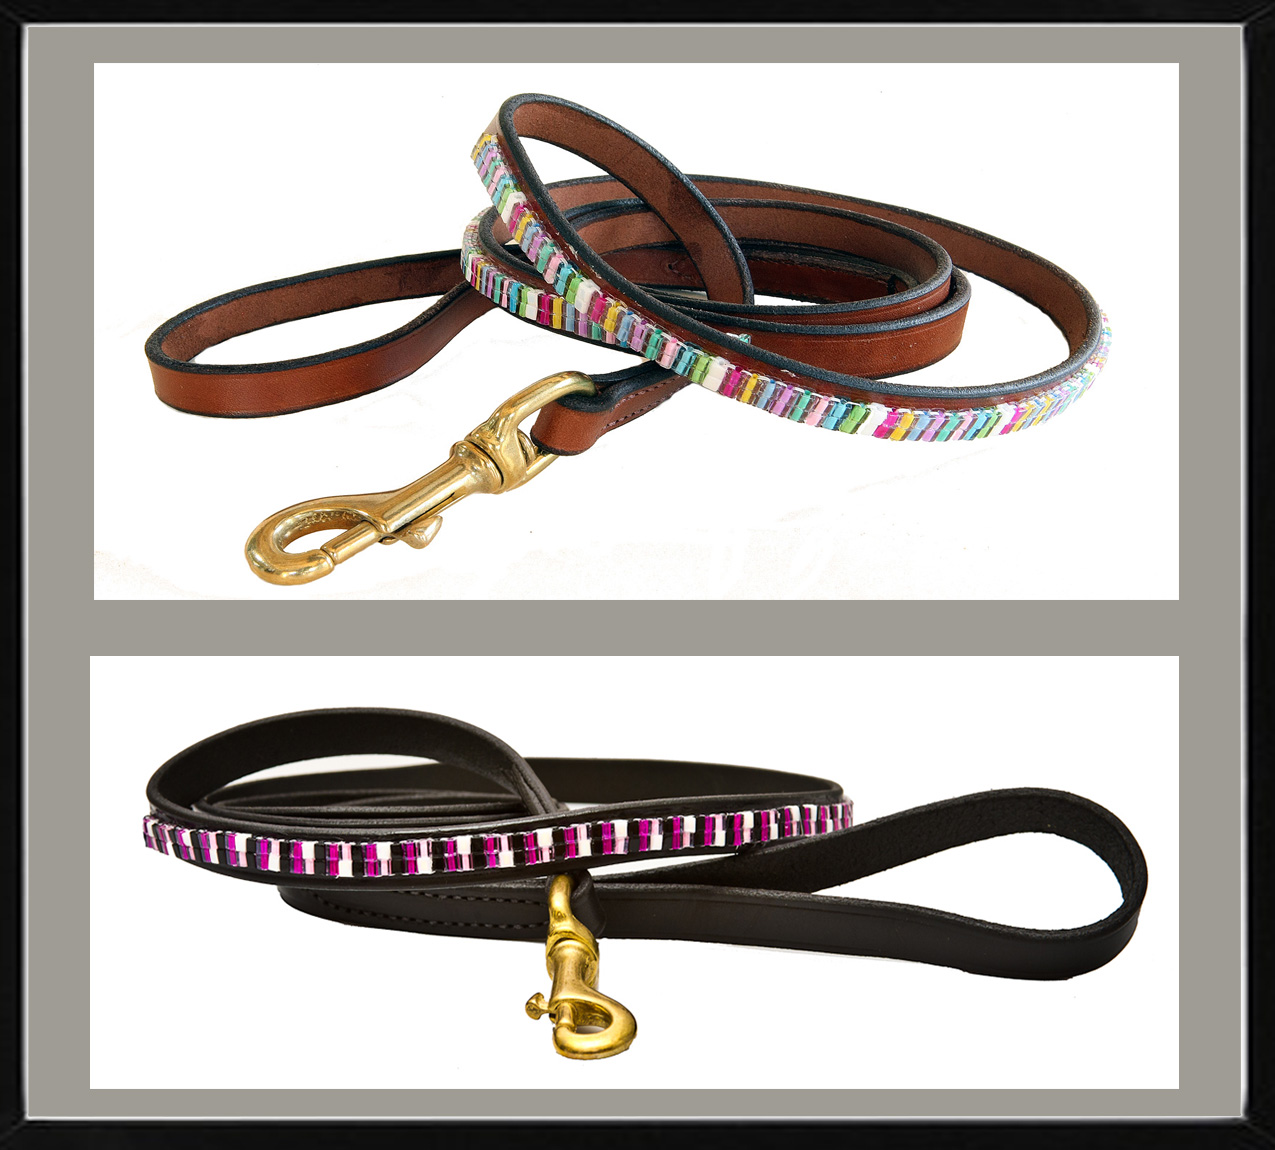 leash-category.jpg